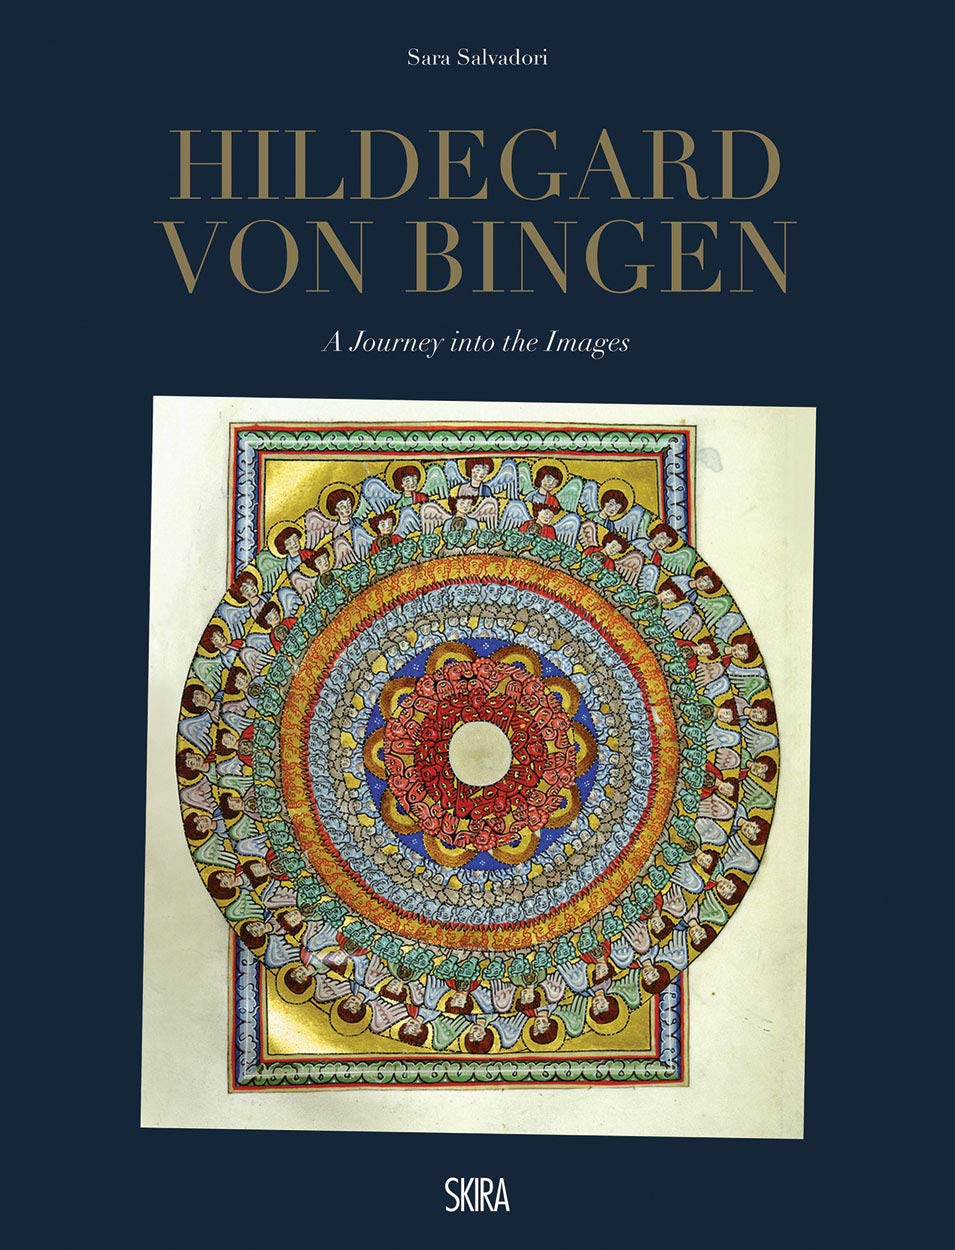 The cover of Hildegard von Bingen: A Journey into the Images